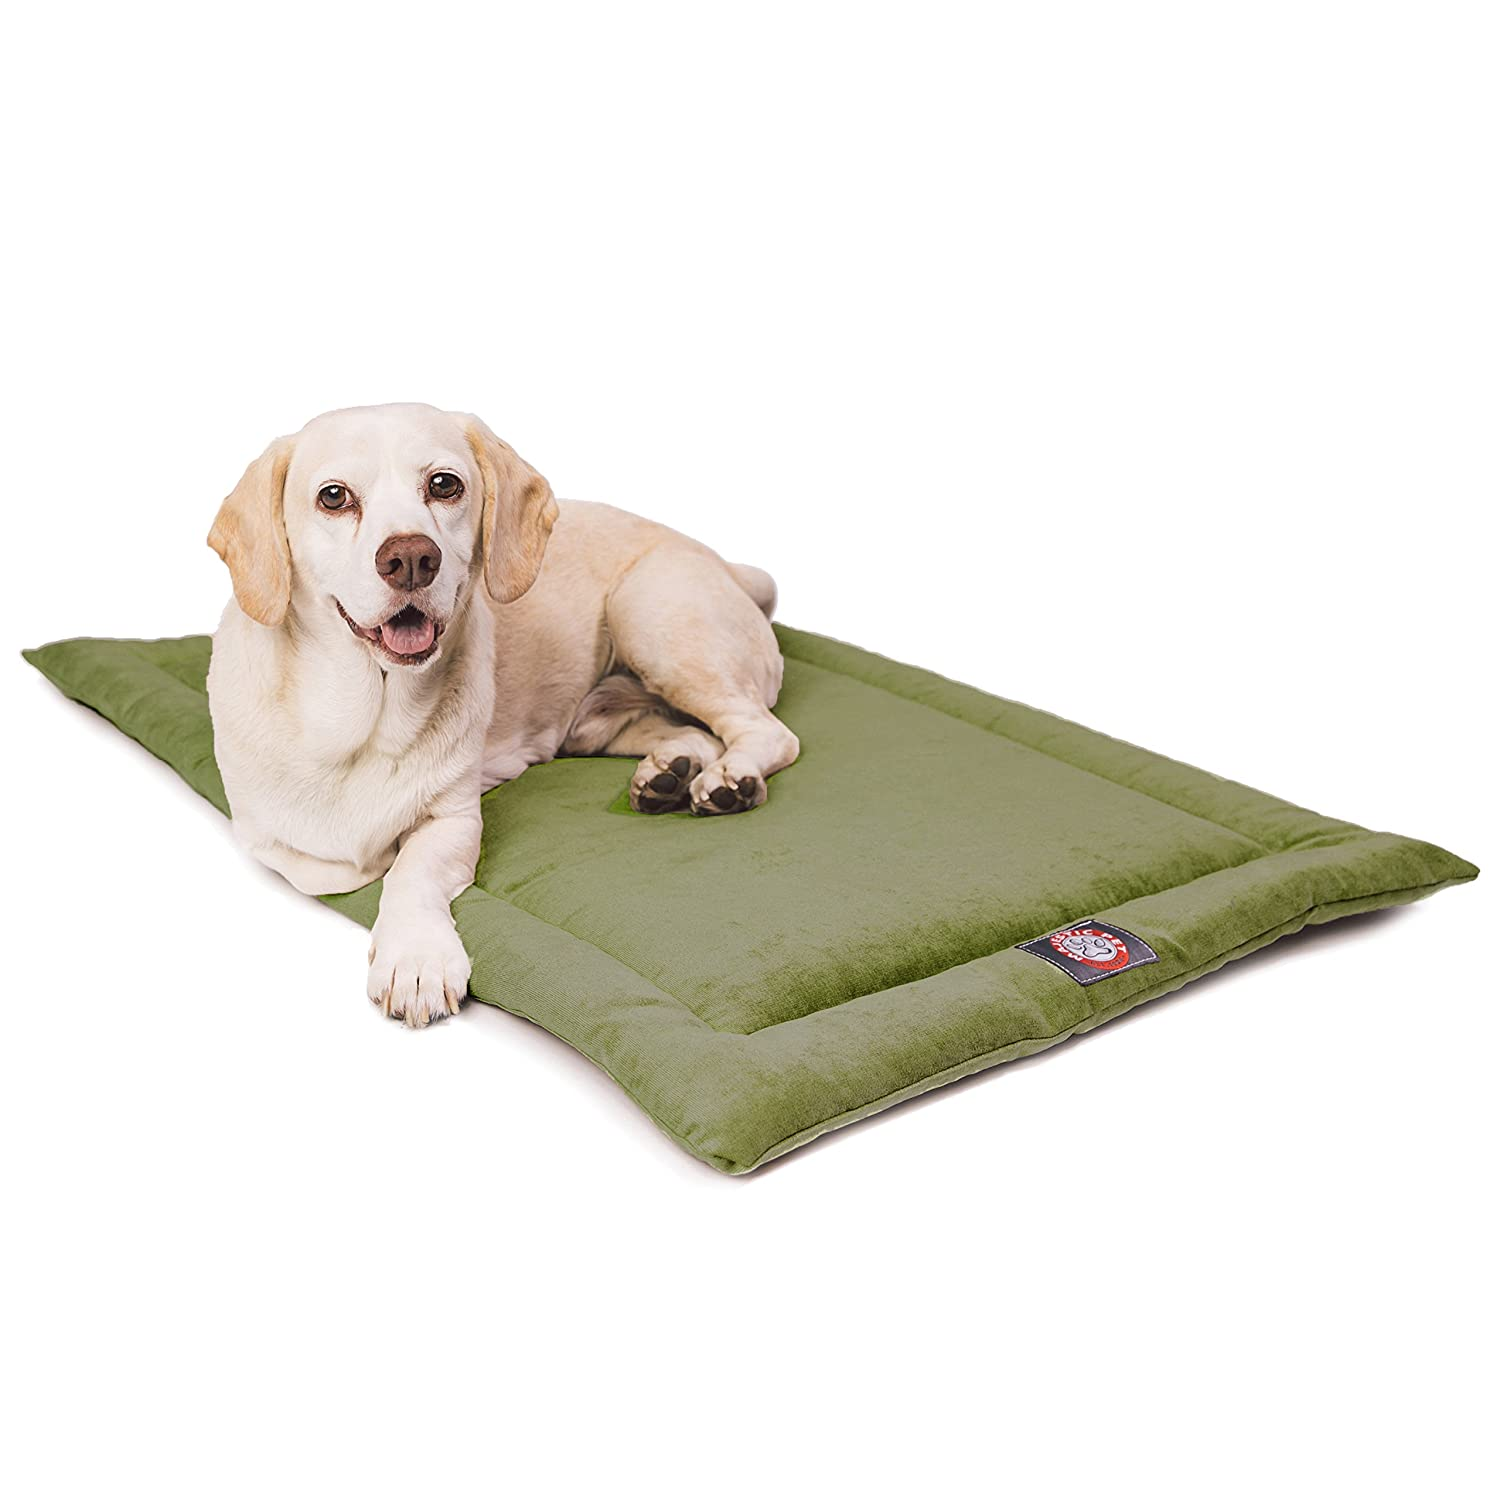 Fern 48-Inch Fern 48-Inch 48  Villa Fern Crate Dog Bed Mat by Majestic Pet Products